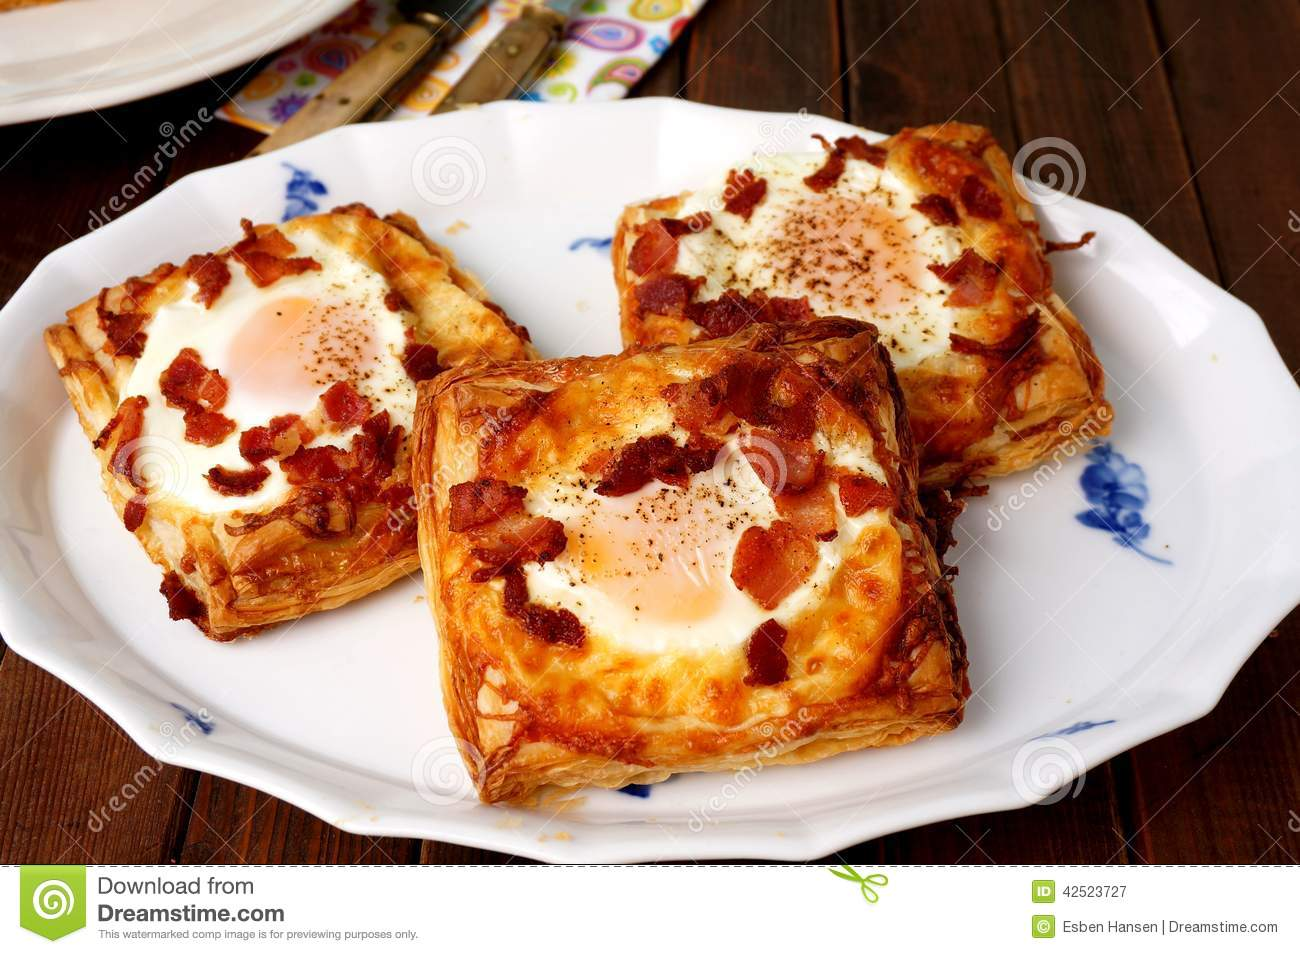 Danish pastries, breakfast with egg, bacon, cheese and puff pastries